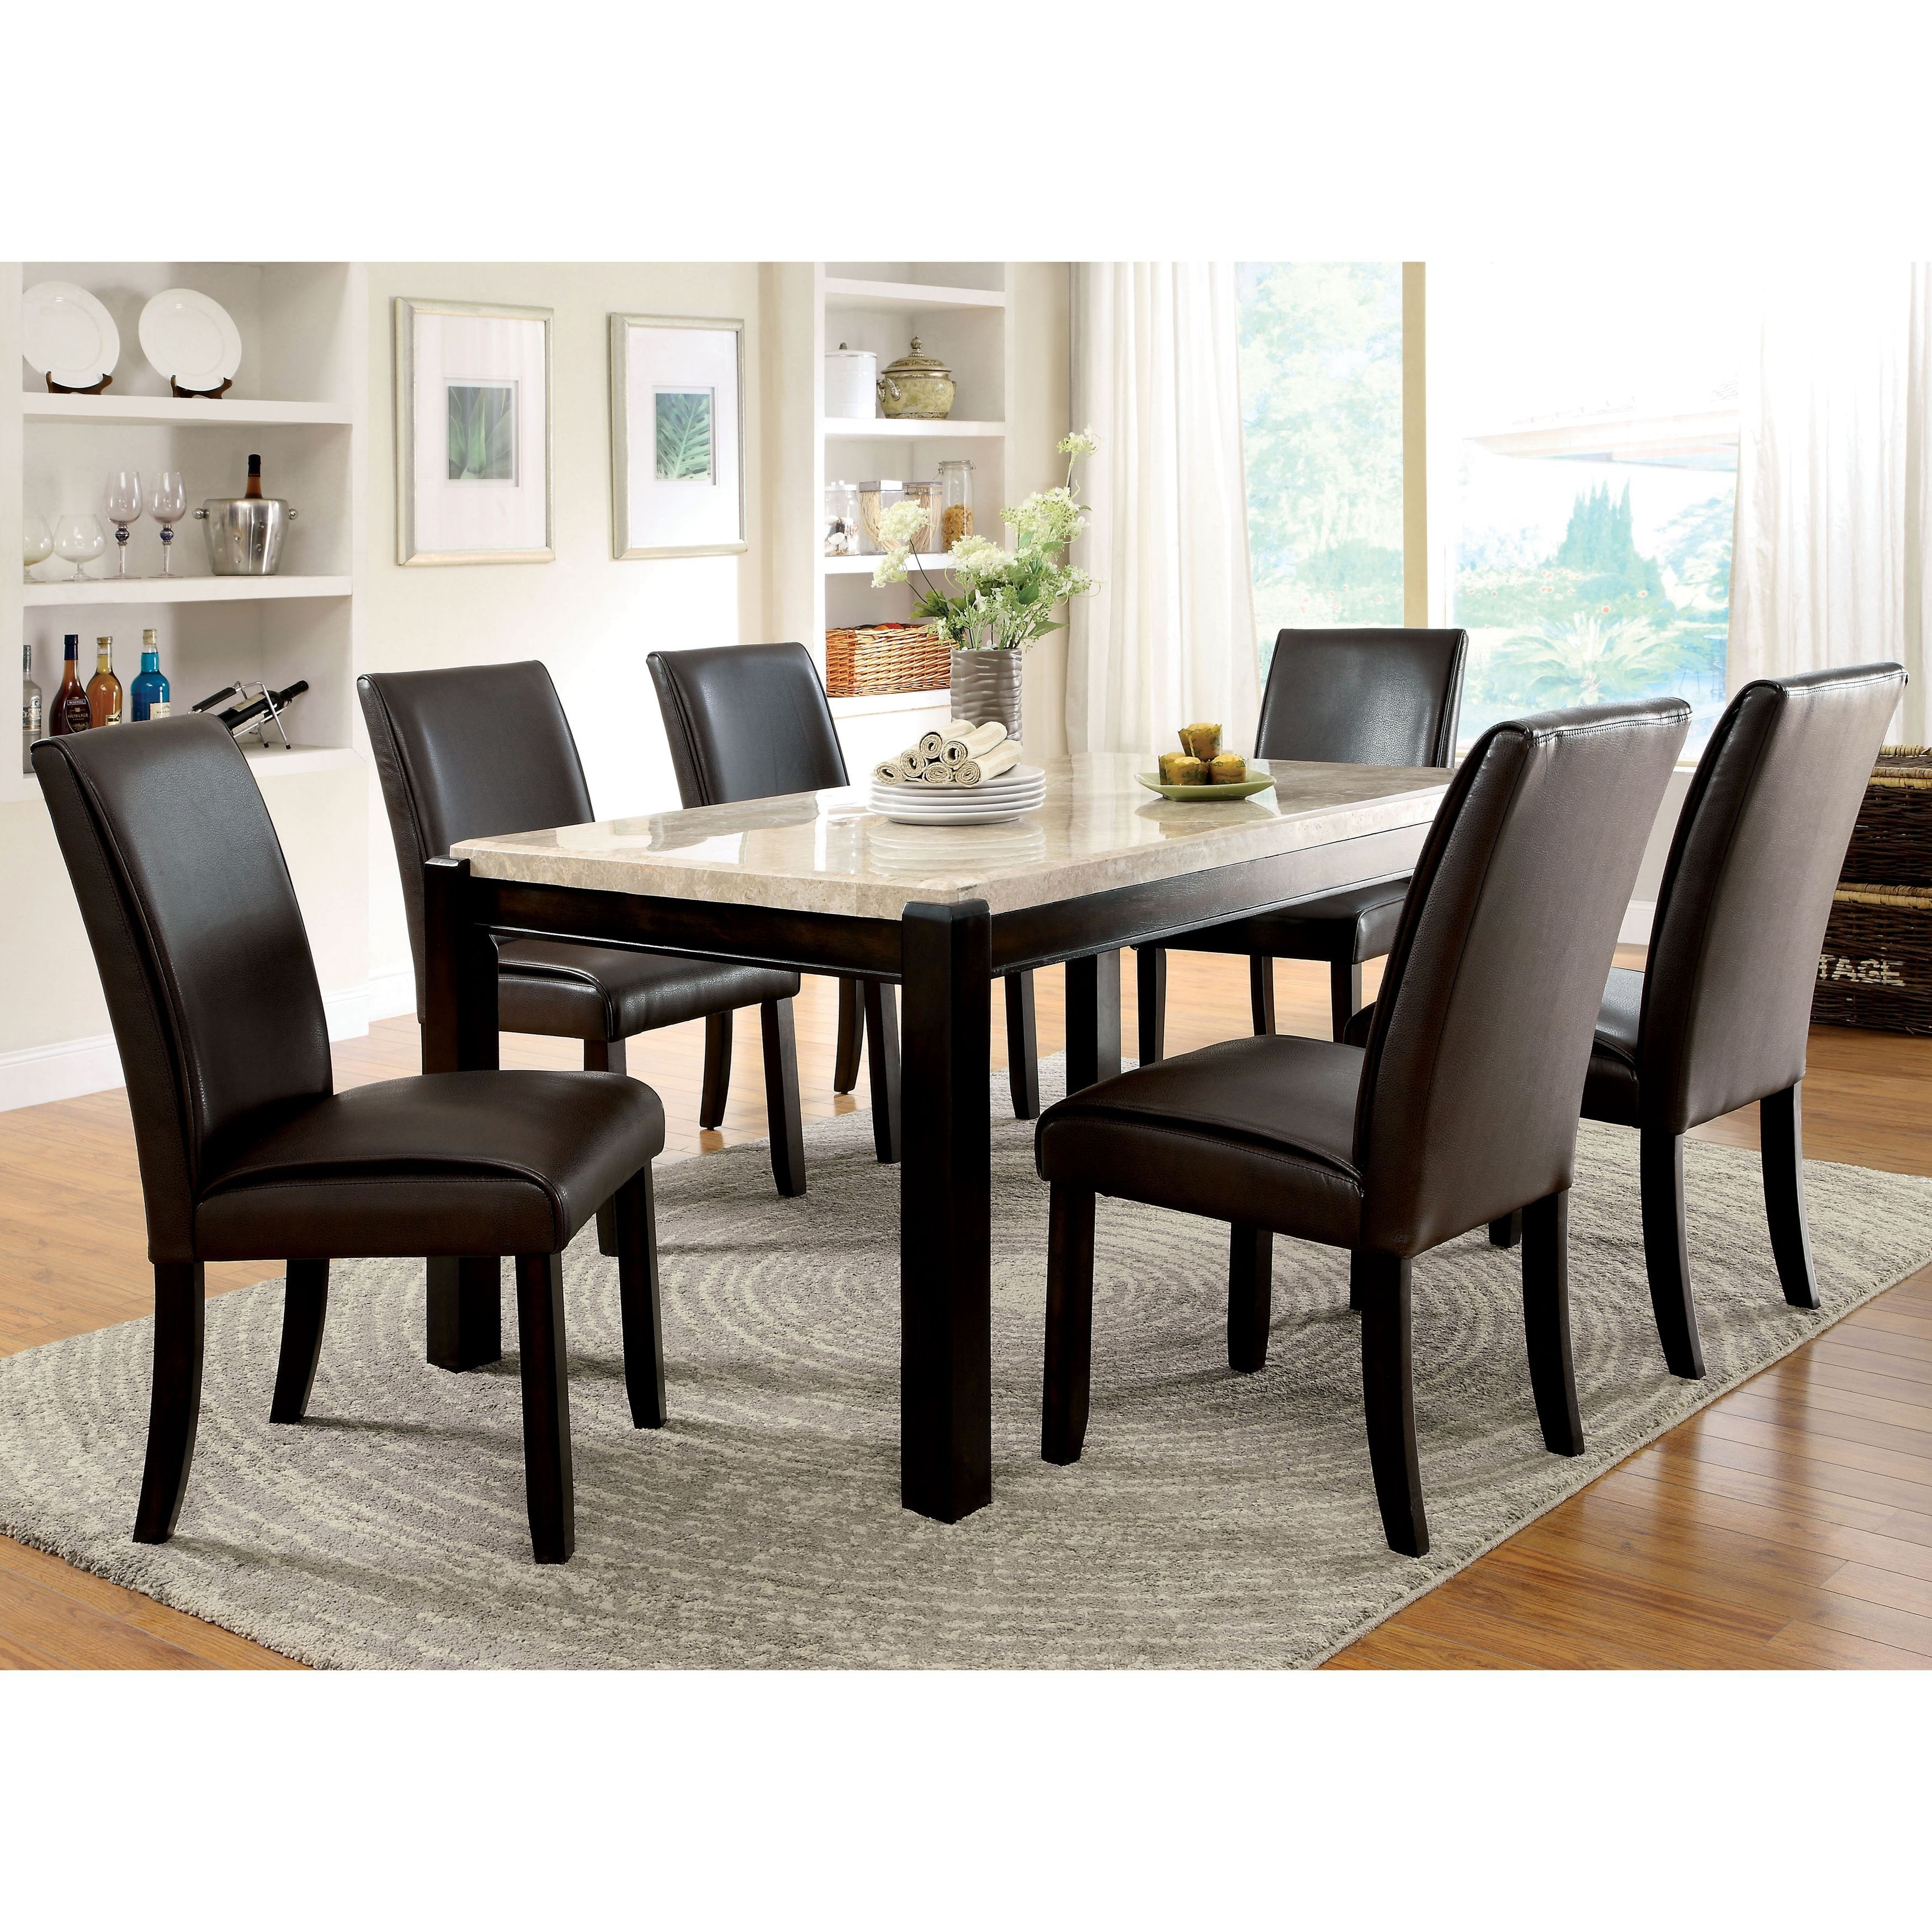 Furniture Of America Joreth 7 Piece Dark Walnut (Brown) Dining Set With Regard To Most Recently Released Palazzo 6 Piece Rectangle Dining Sets With Joss Side Chairs (View 11 of 20)